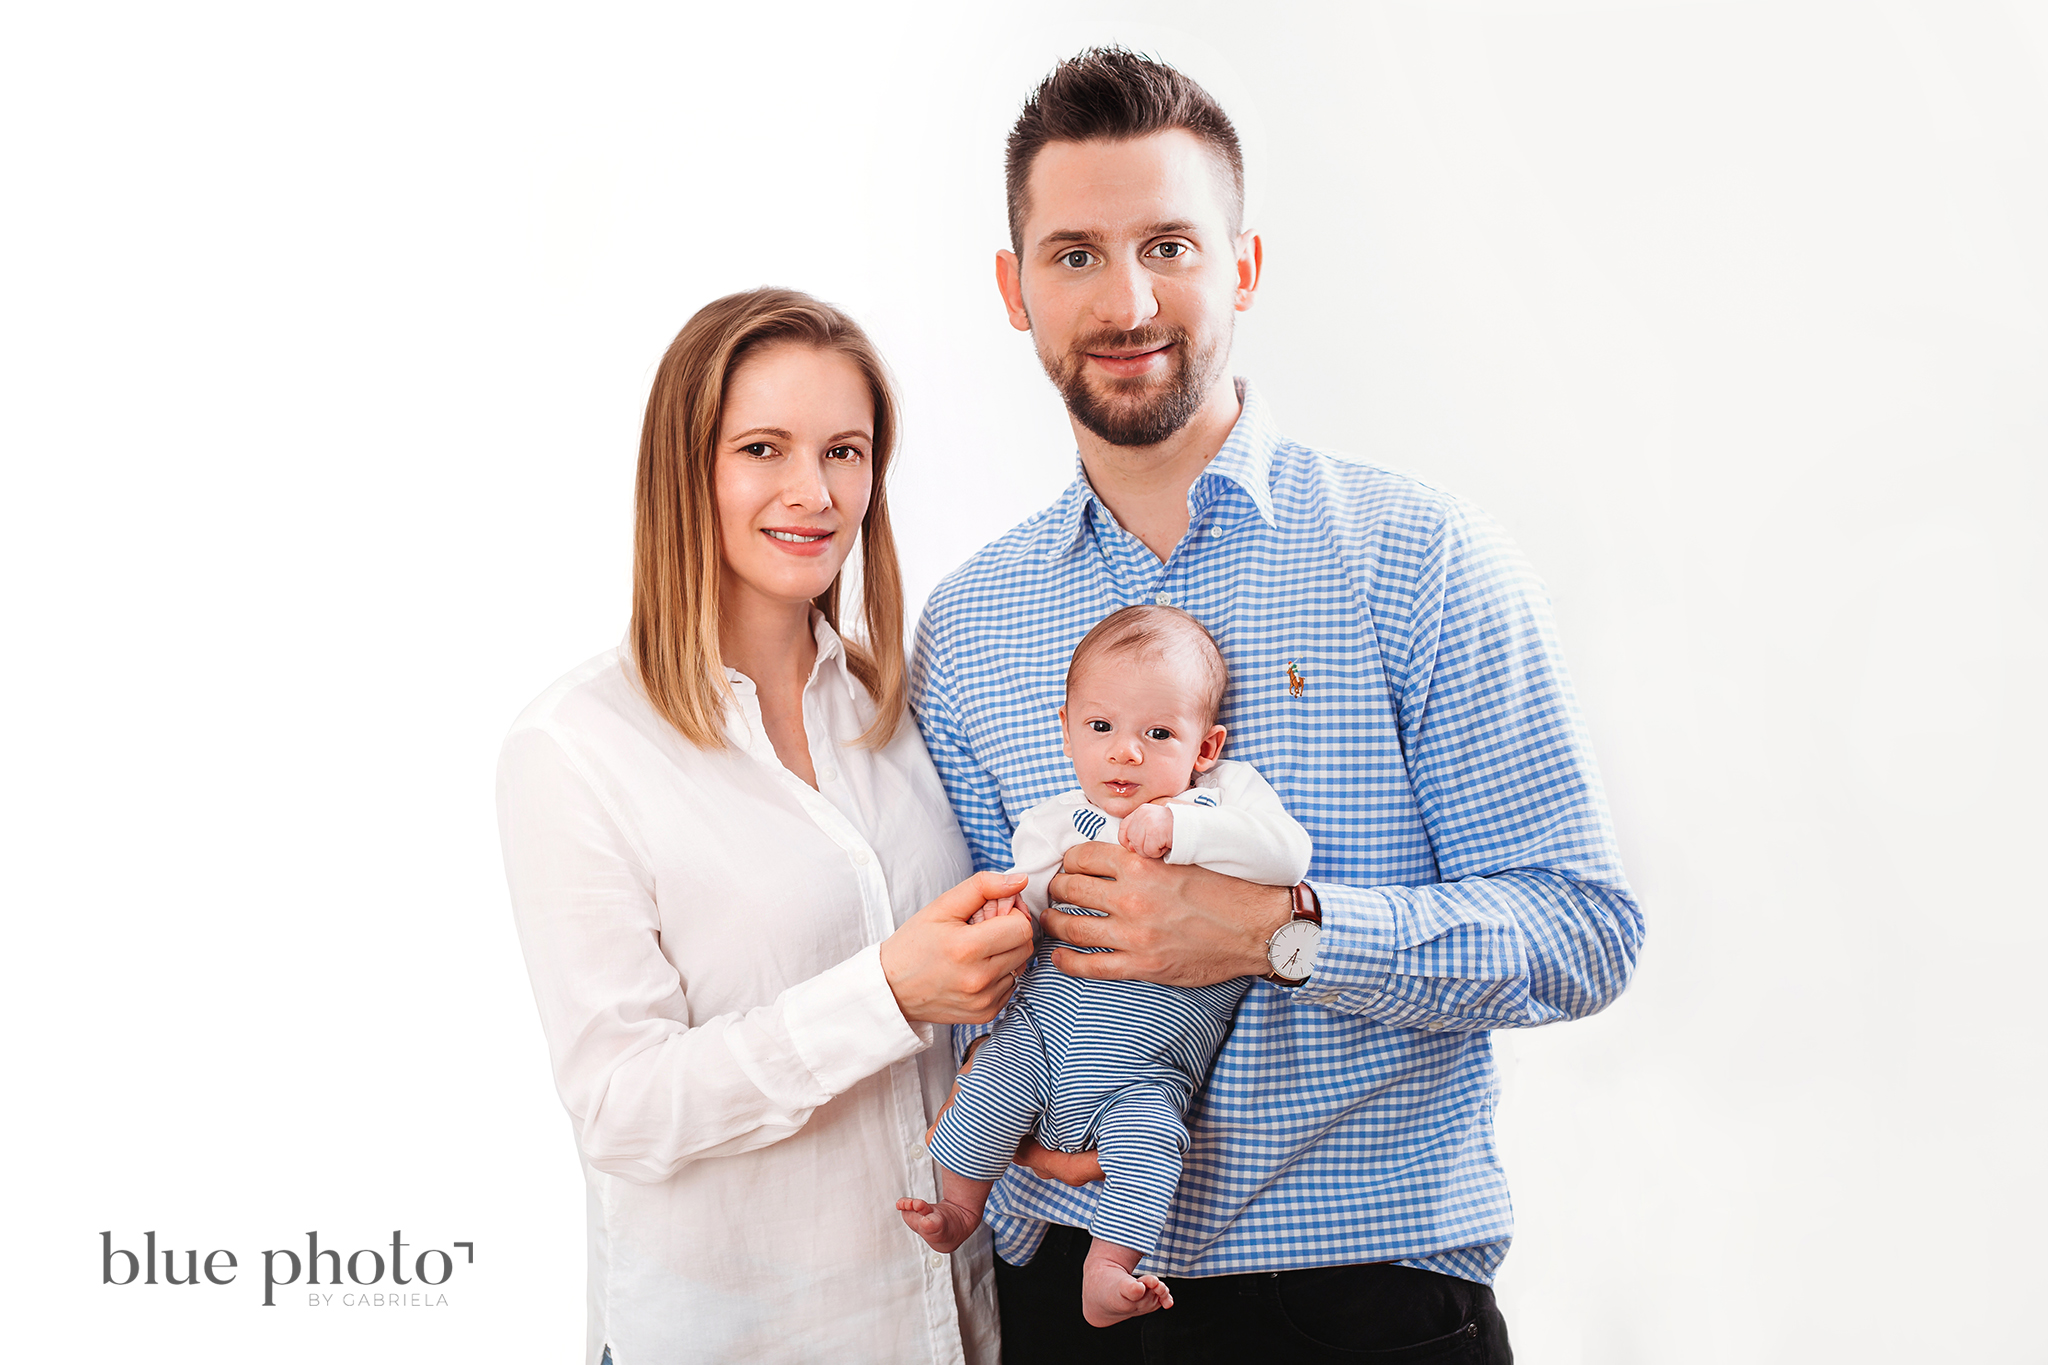 Aleksander and his parents, newborn and family session in West London.